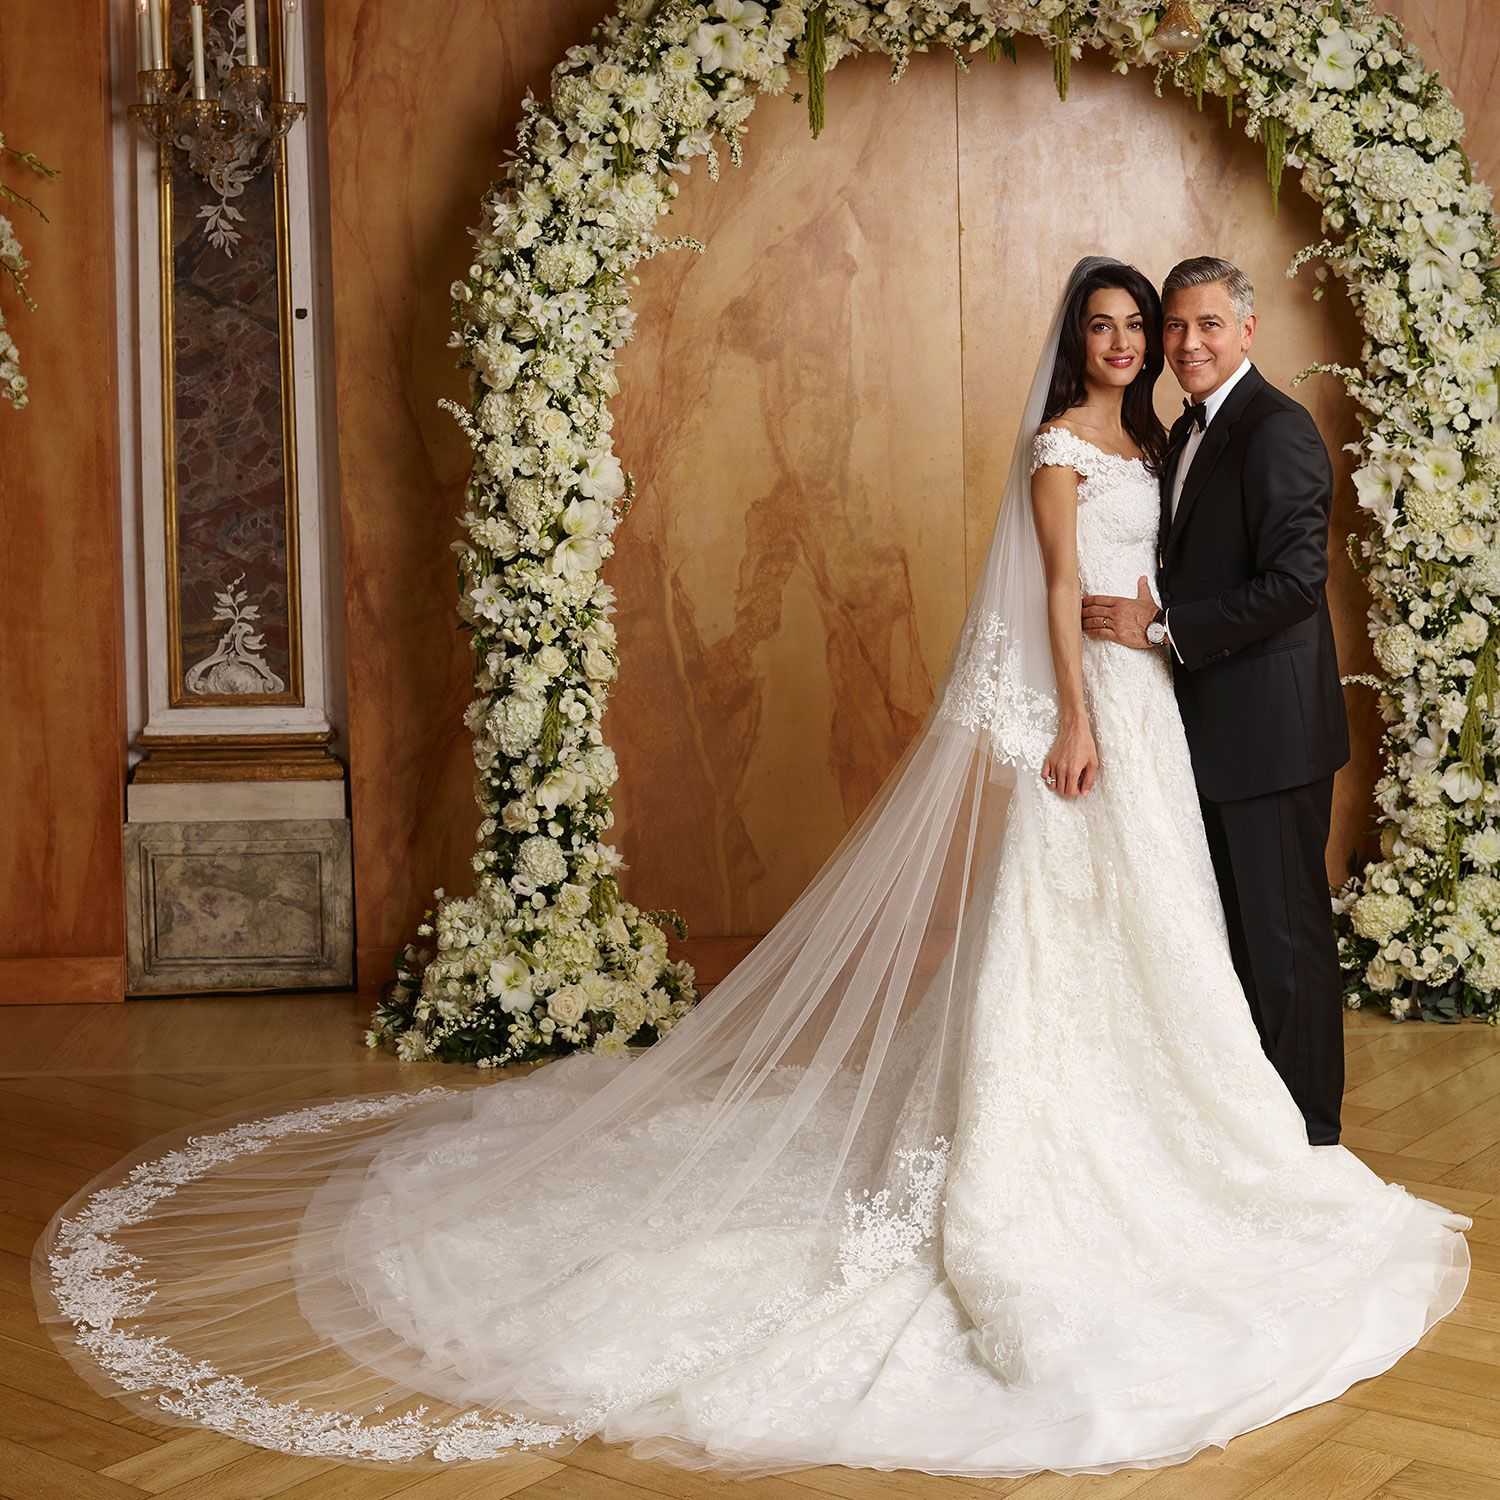 bridal gown of Amal Clooney